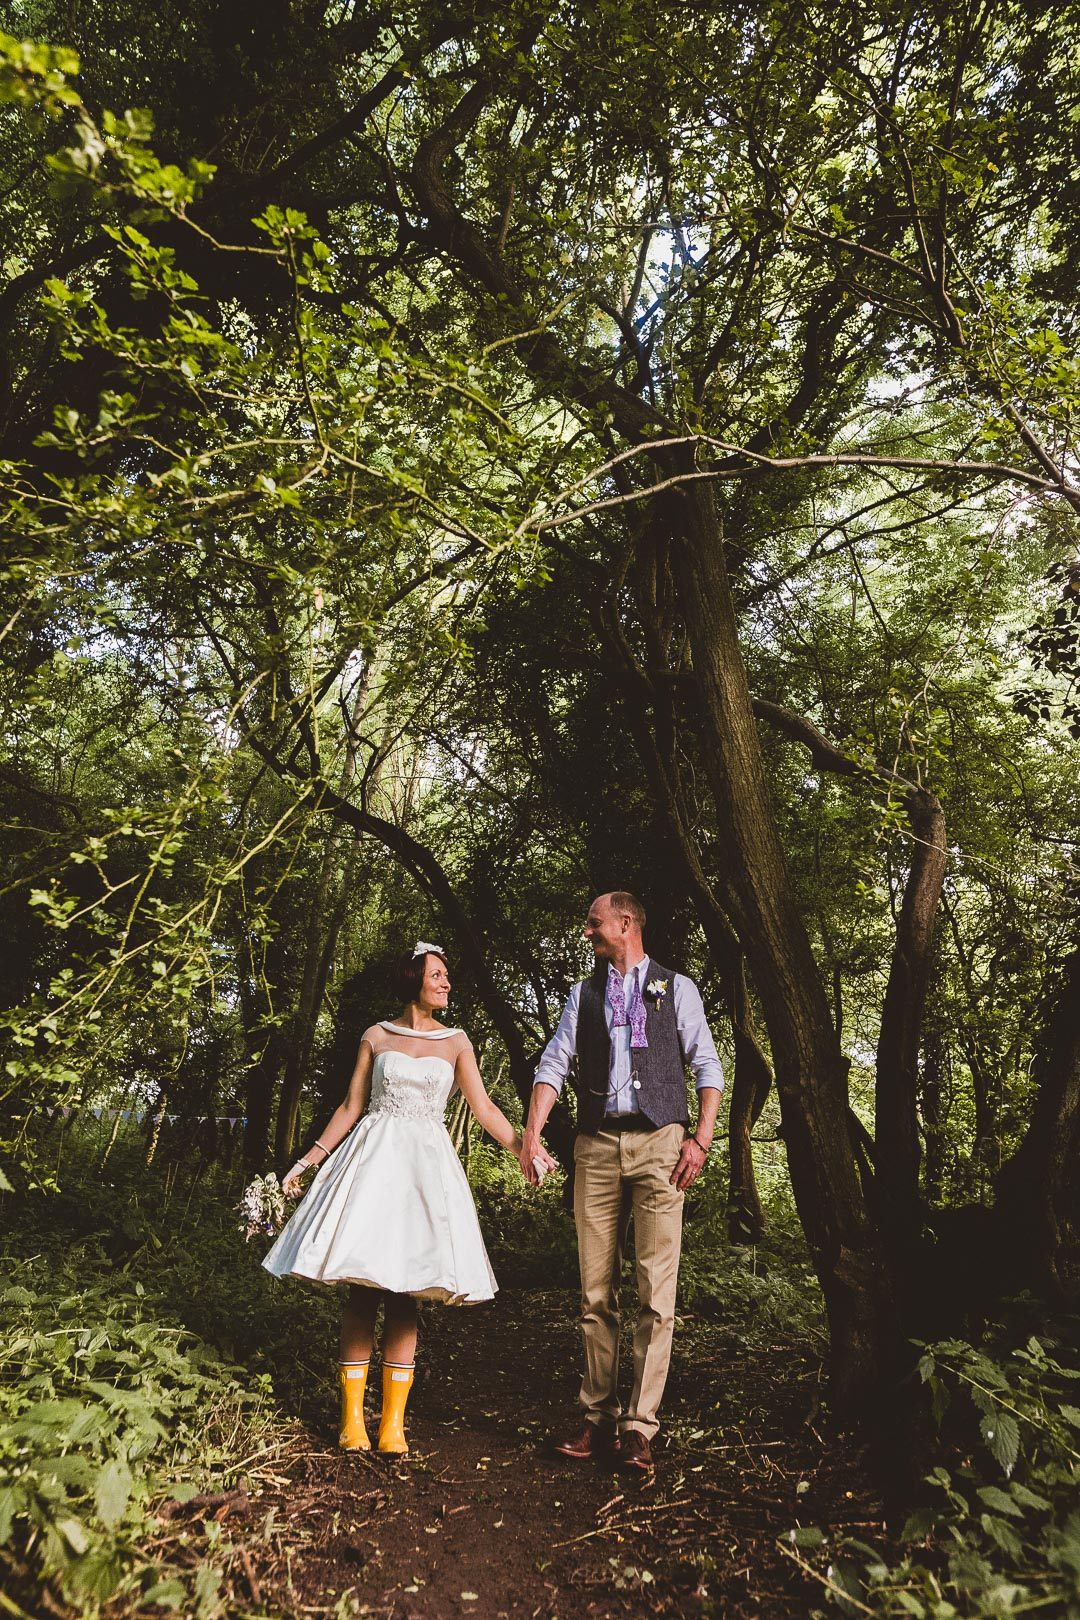 bride-and-groom-in-woodland-jen-and-mat's-festival-wedding-at-Scraptoft farm